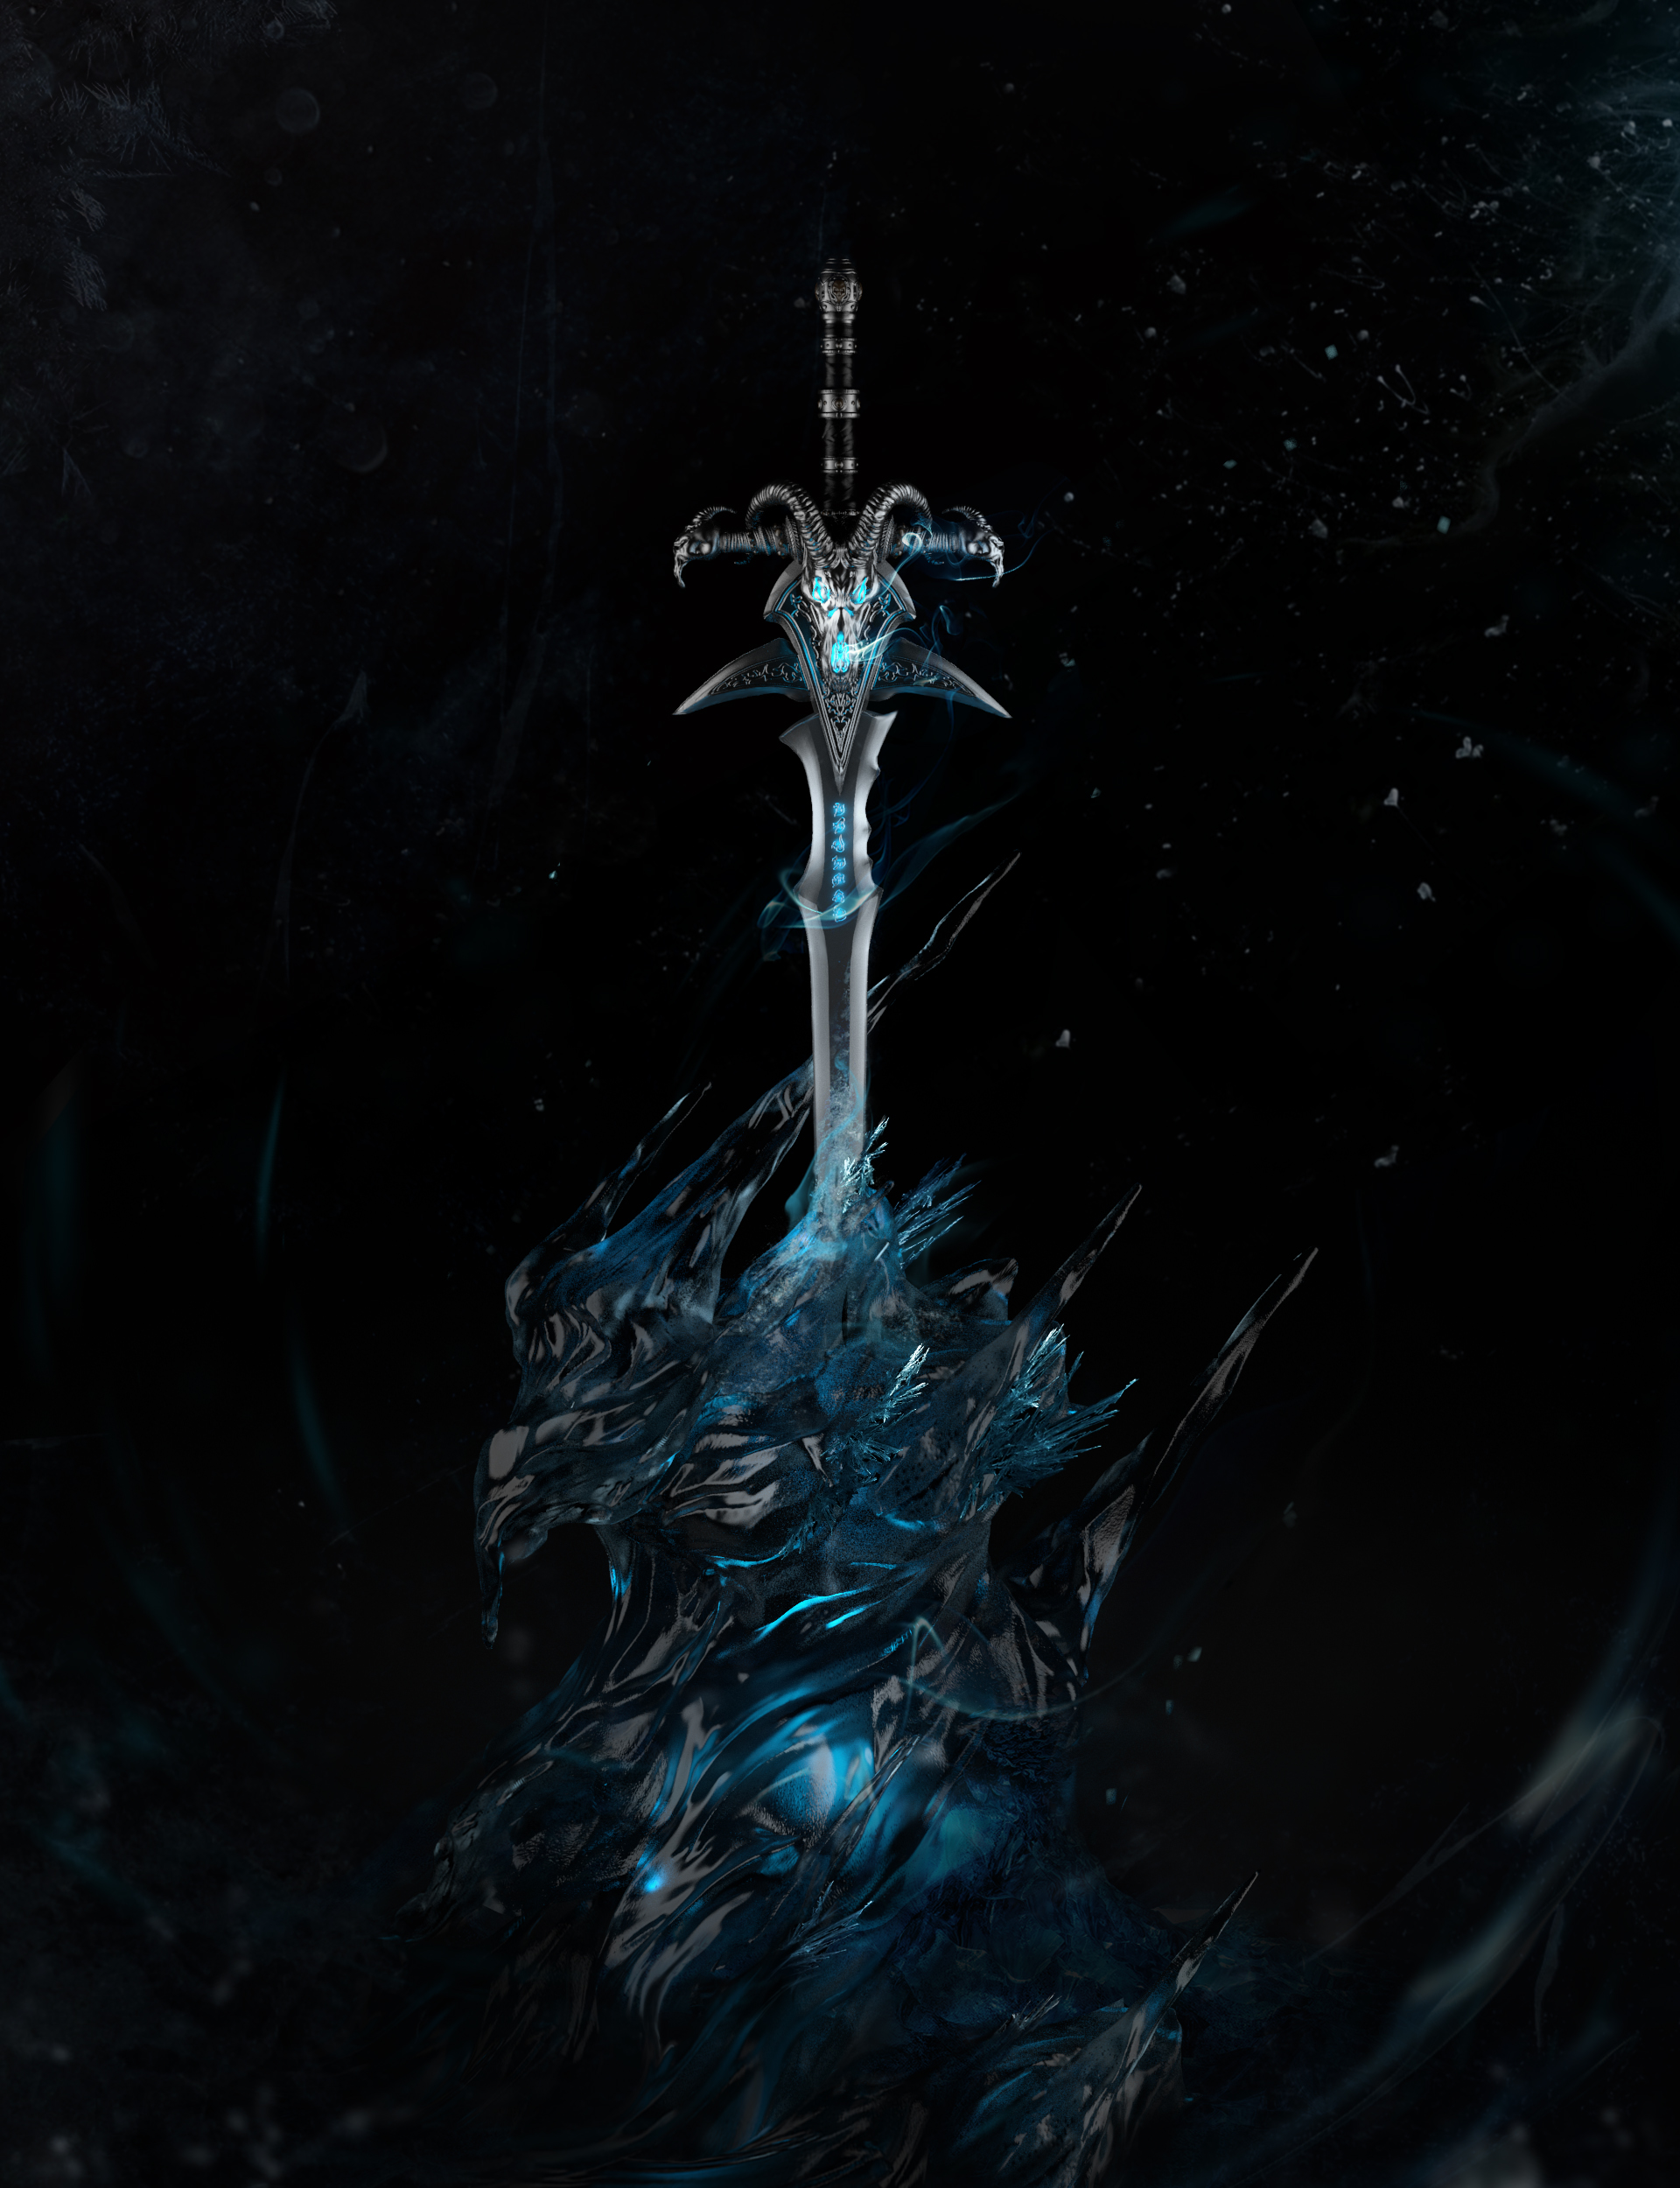 The final composition of Frostmourne with ice stand